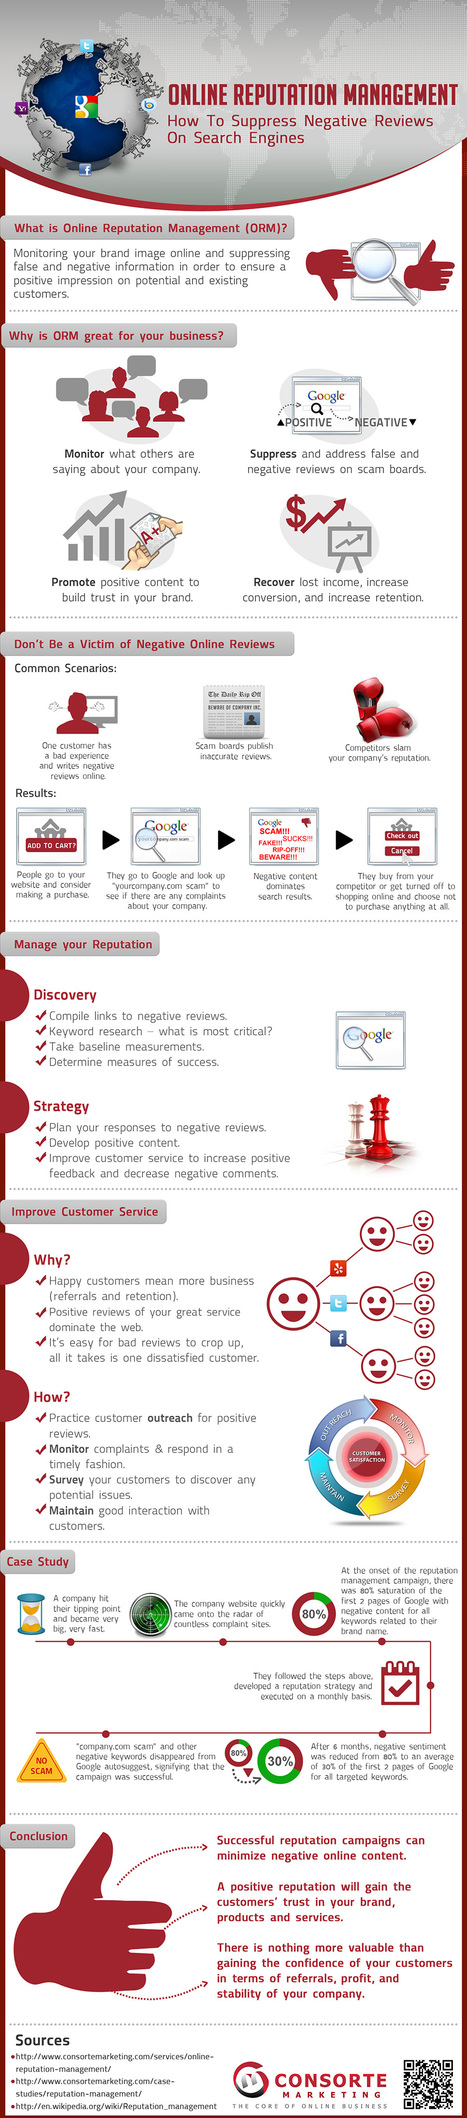 Online reputation management [Infographic] | formation 2.0 | Scoop.it | Mokili Digital | Scoop.it